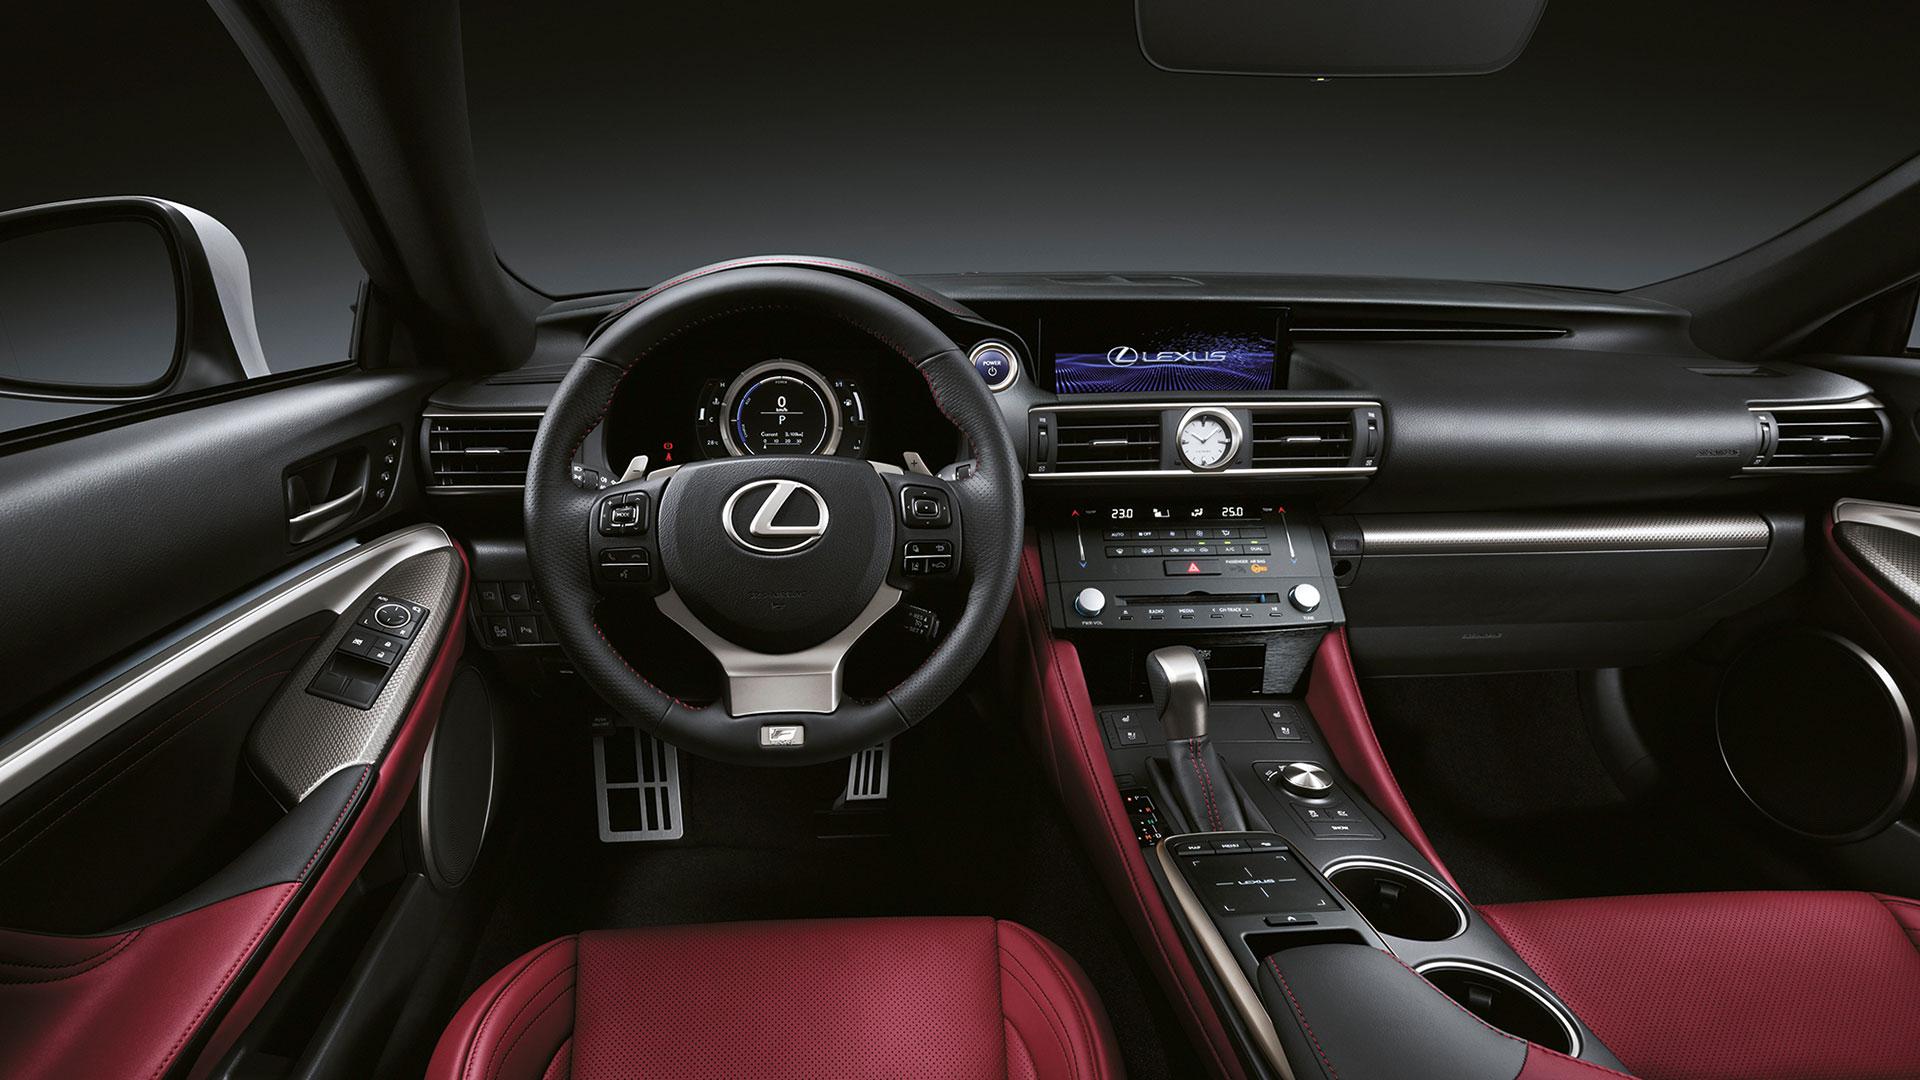 2017 lexus rc gallery 002 interior